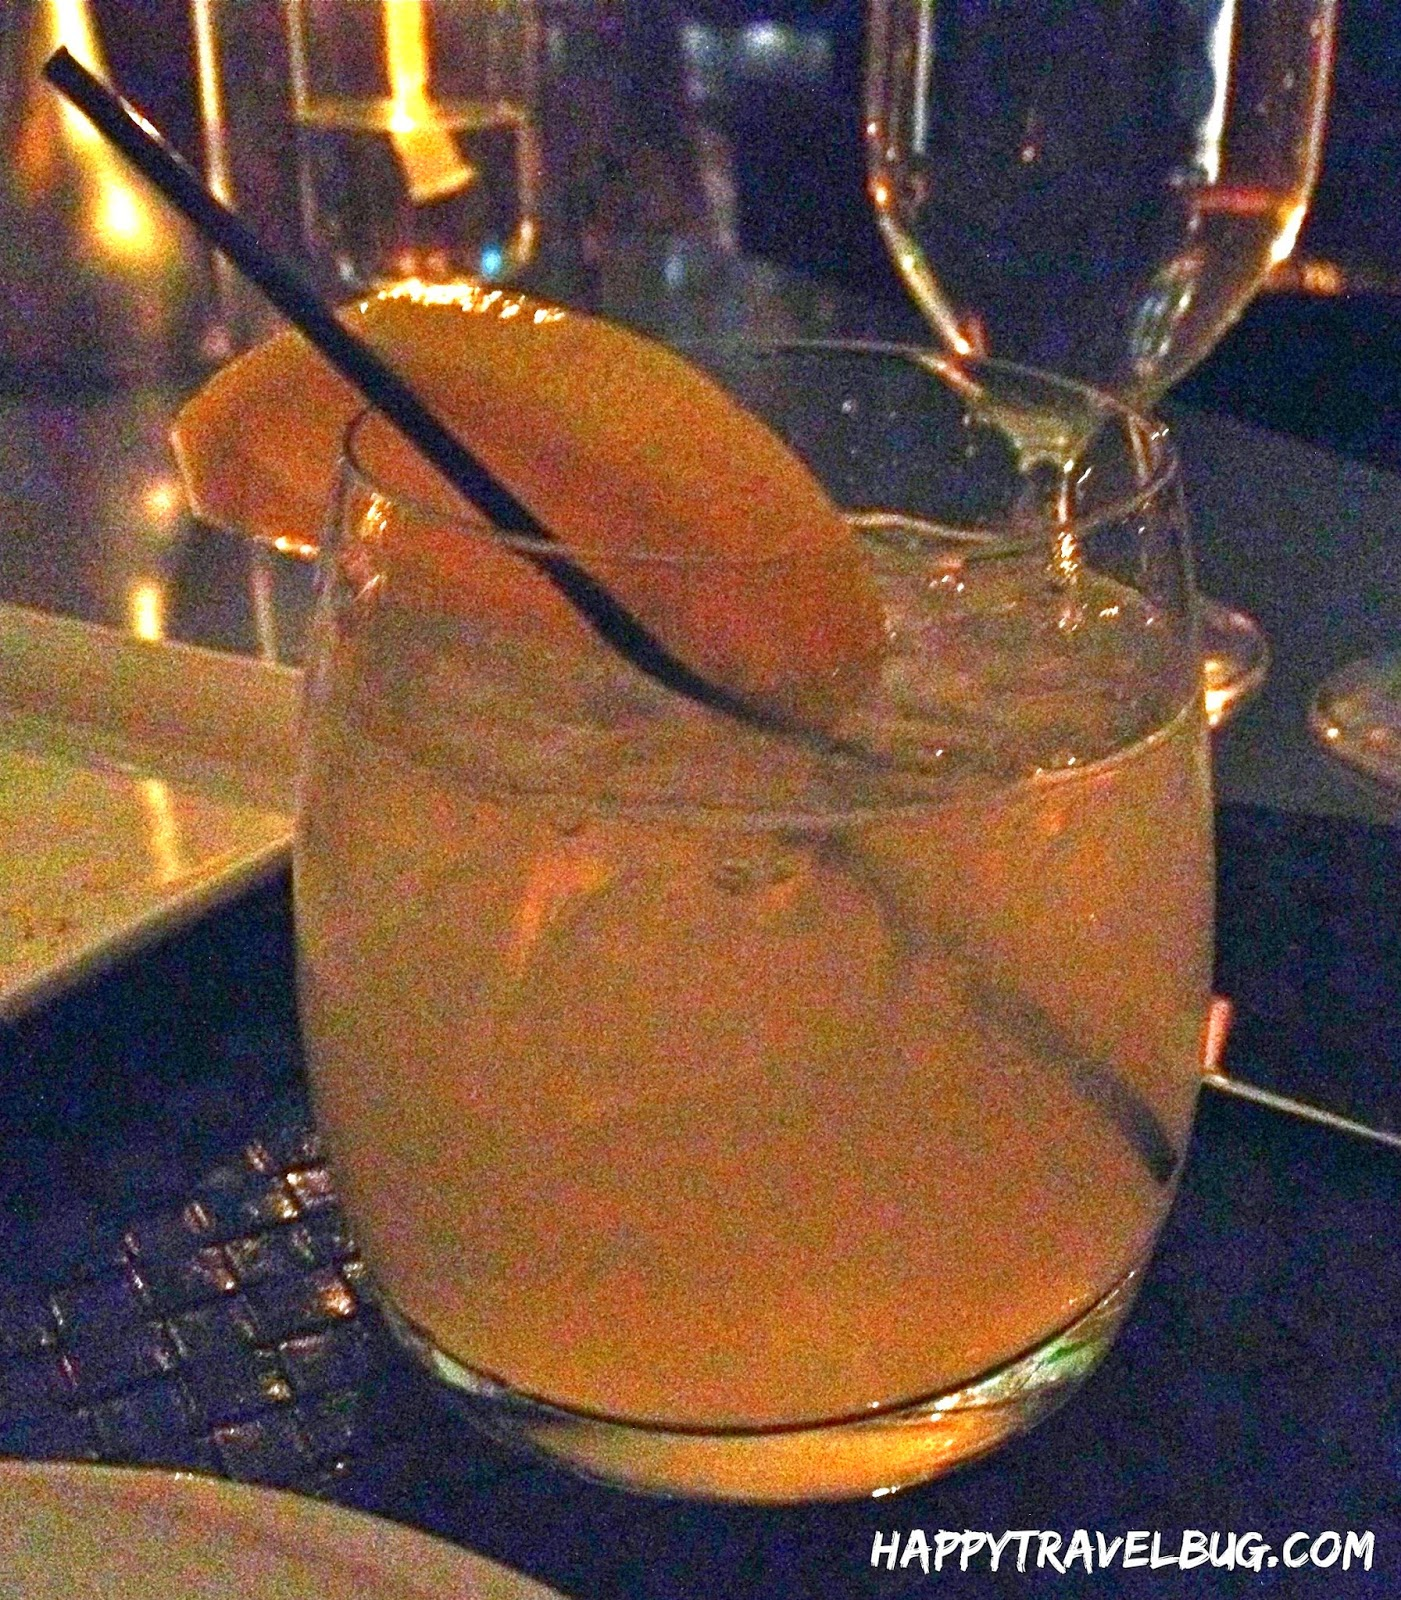 My cocktail at Aureole Restaurant in Las Vegas